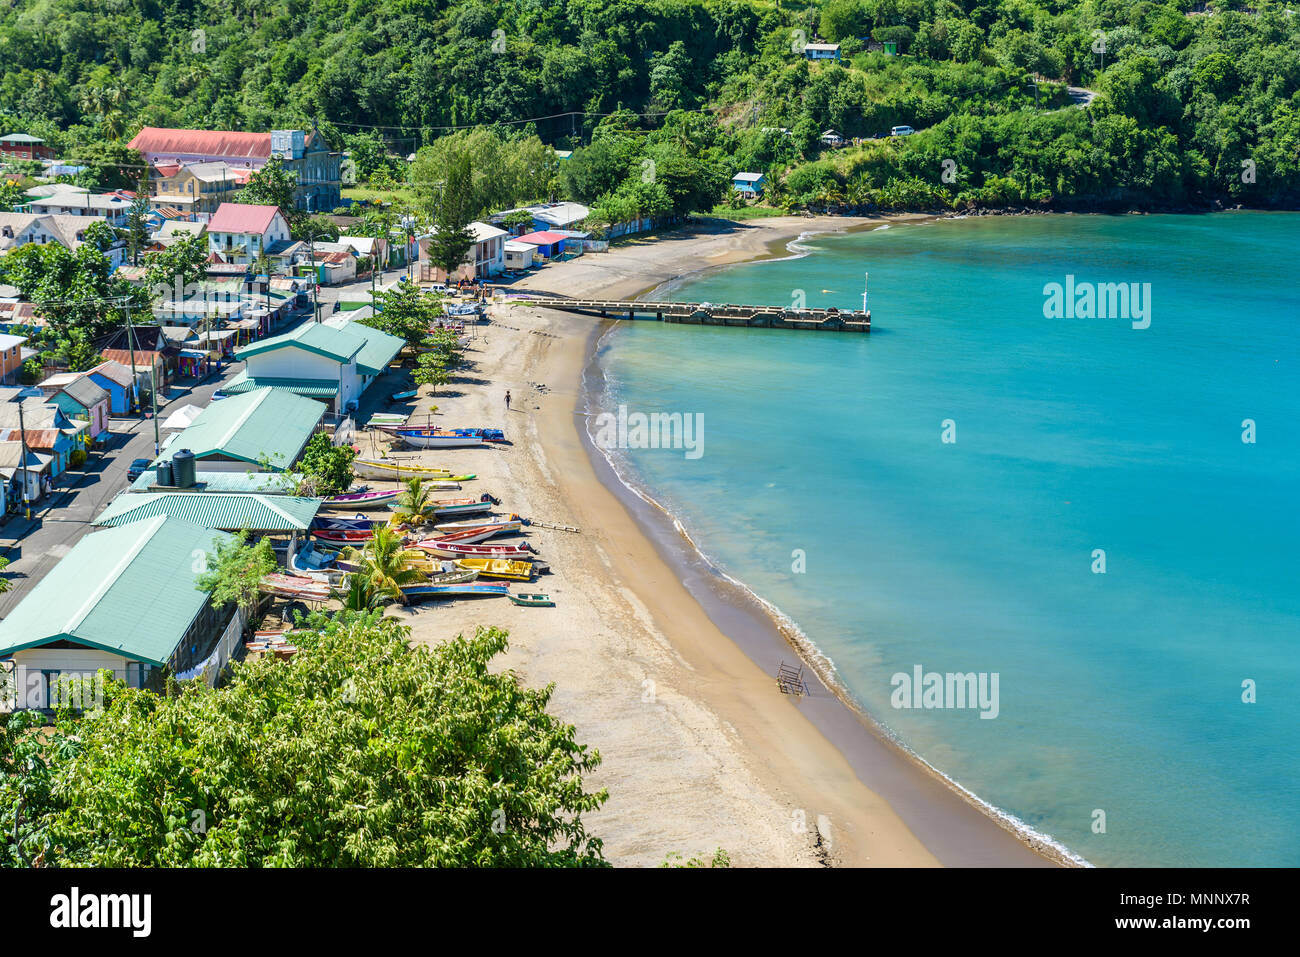 Anse la Raye - tropical beach on the Caribbean island of St. Lucia. It is a paradise destination with a white sand beach and turquoiuse sea. Stock Photo